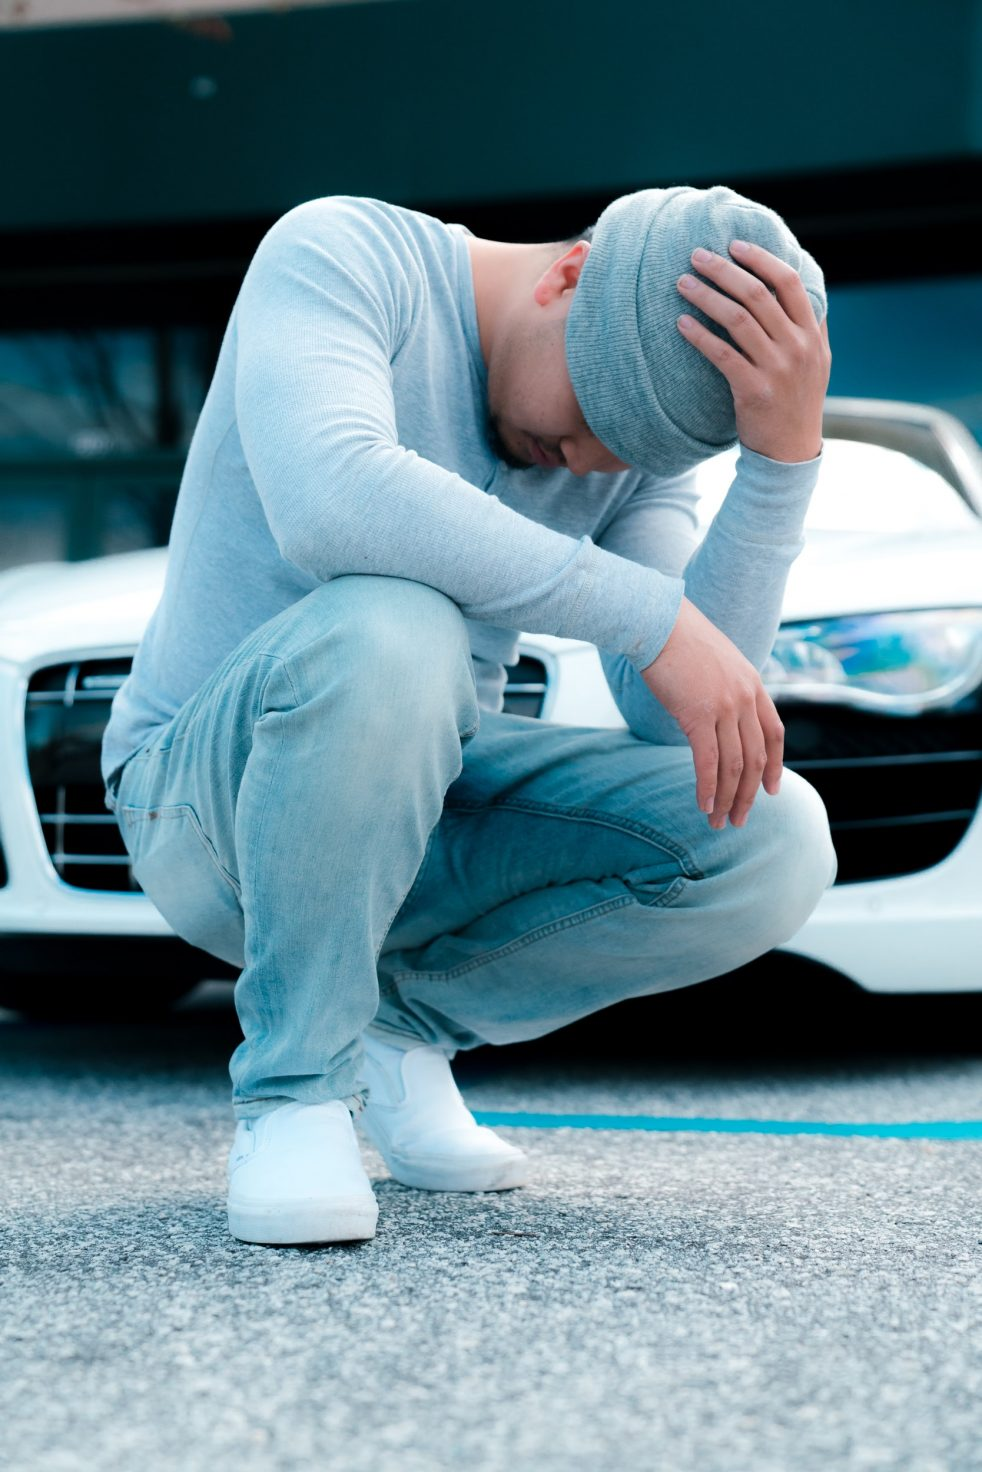 Image is of a man dressed in a light blue long-sleeve top, pants, and knit cap, squatting in front of a car with his head down and face hidden like he's sad about something. Sometimes your emotions just get the best of you and you need a minute to recover.